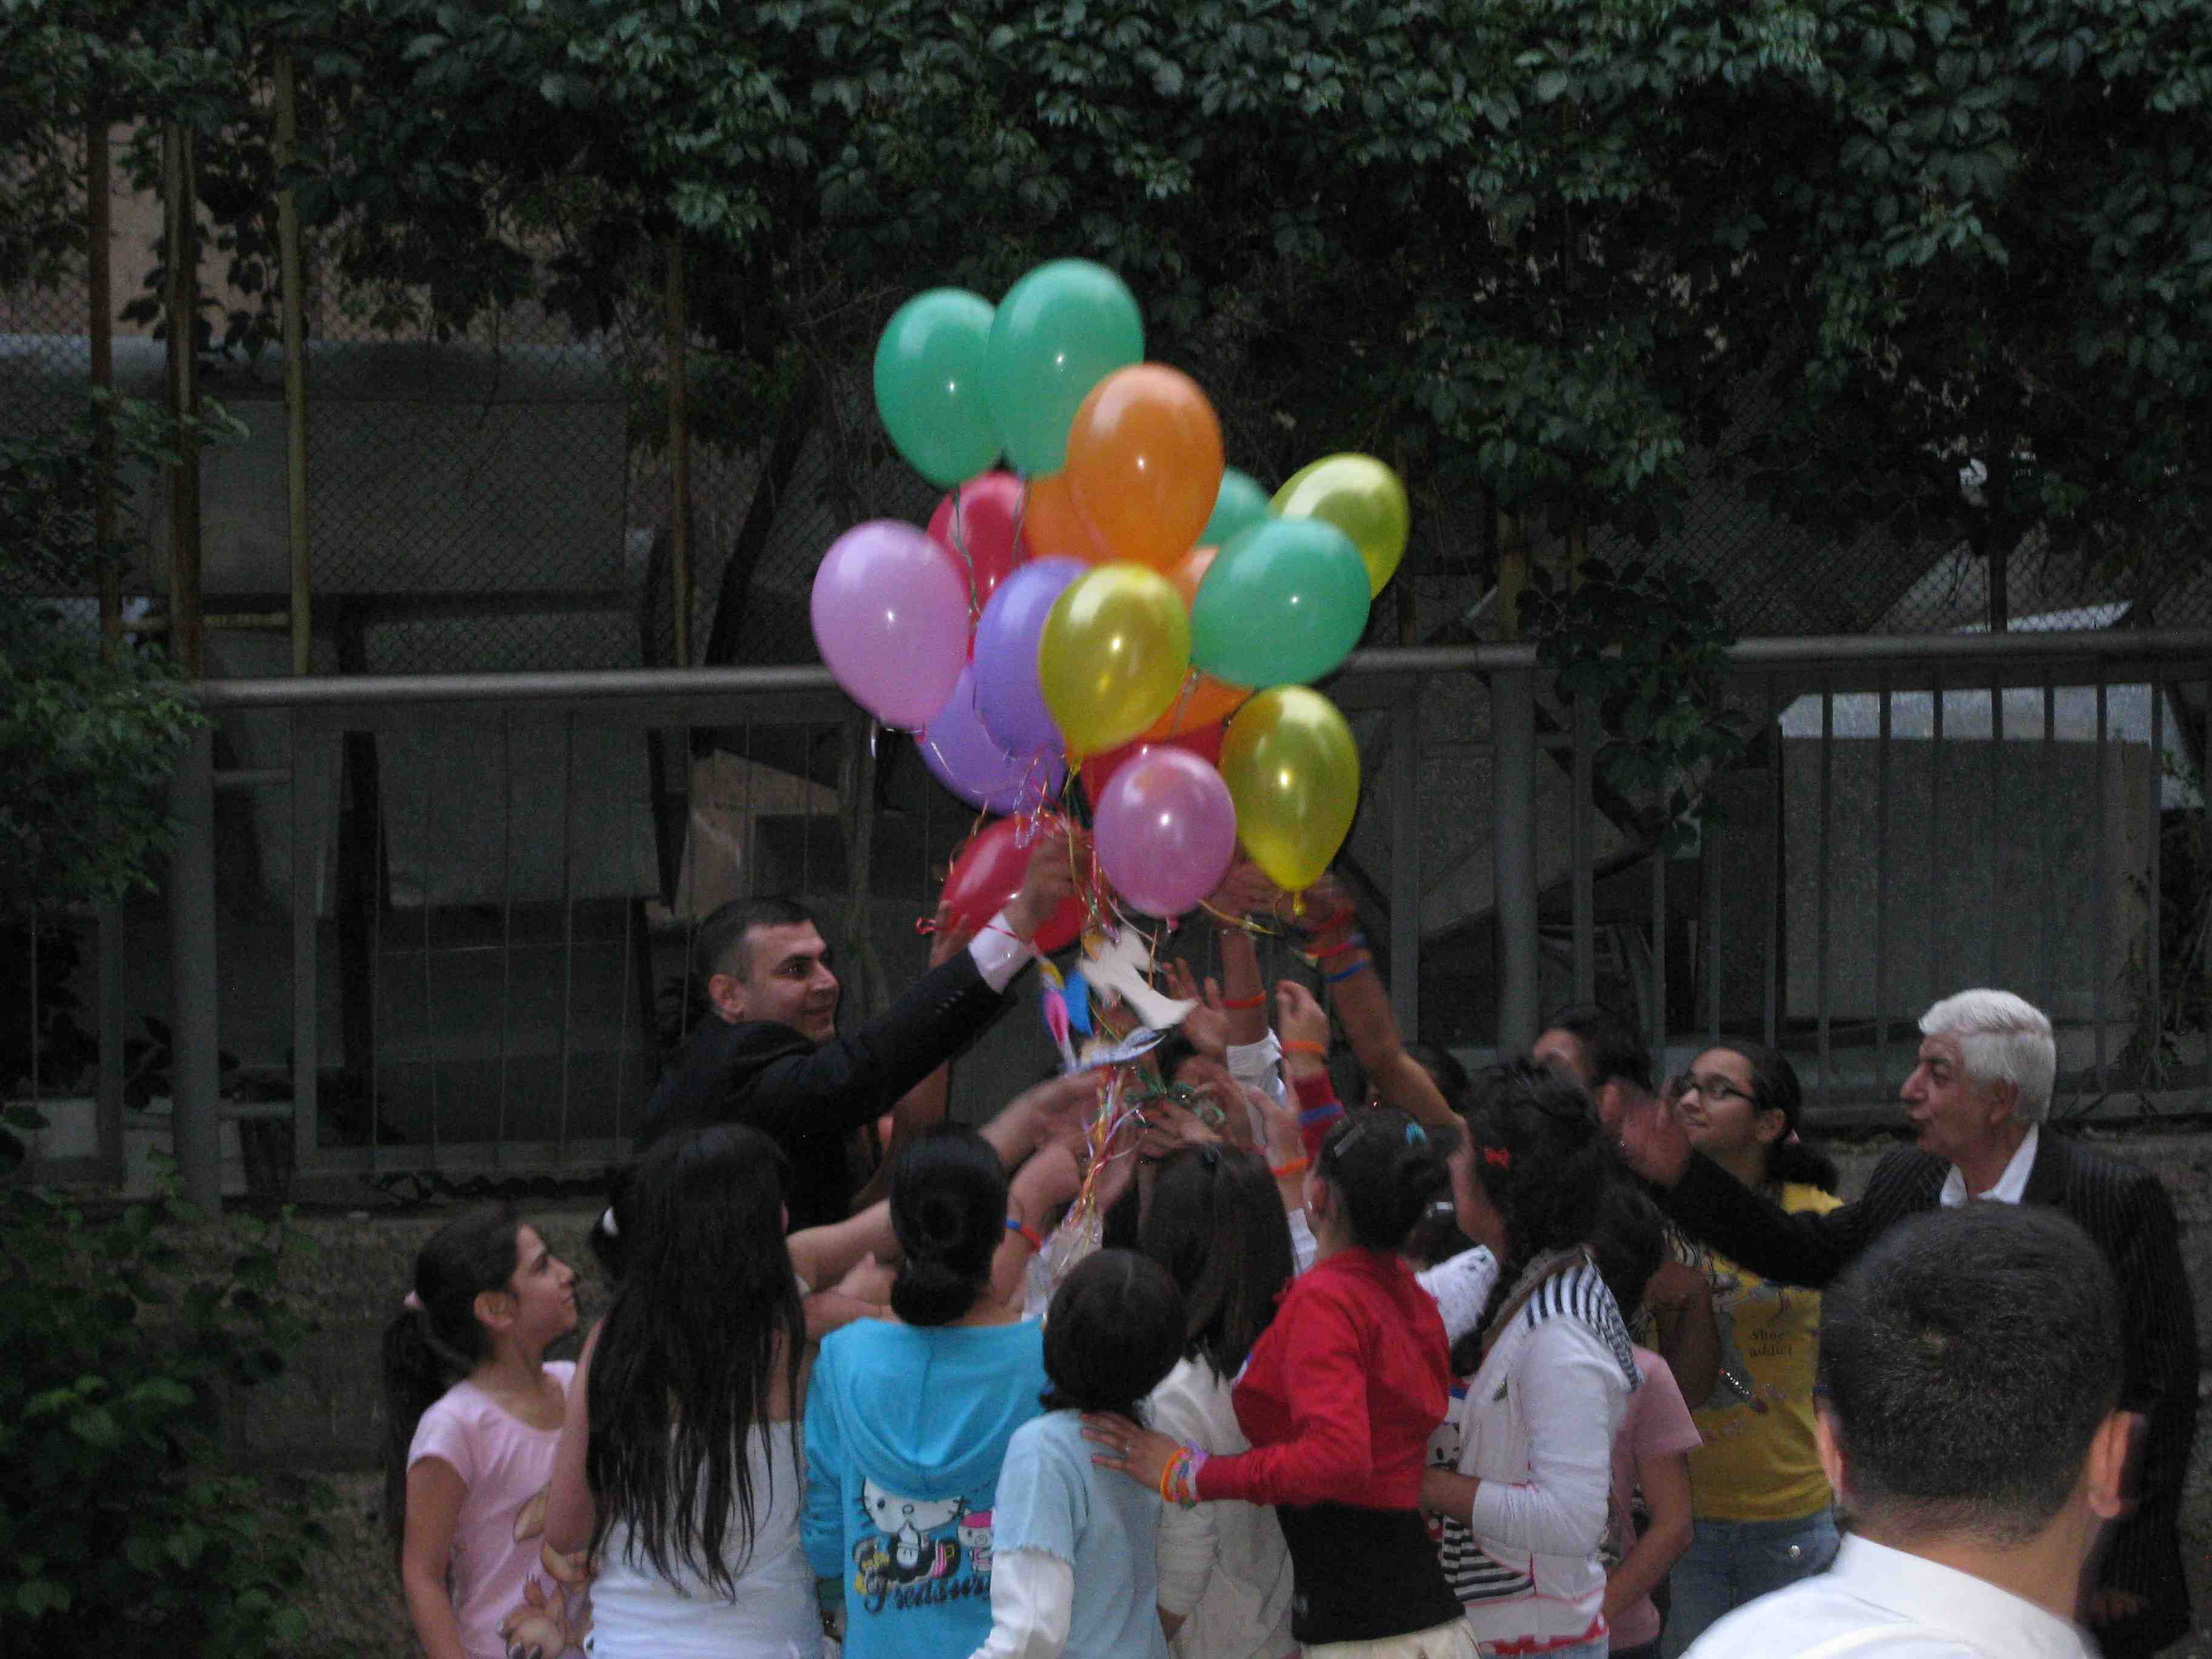 Residents letting loose their 'notes of hope' in balloons